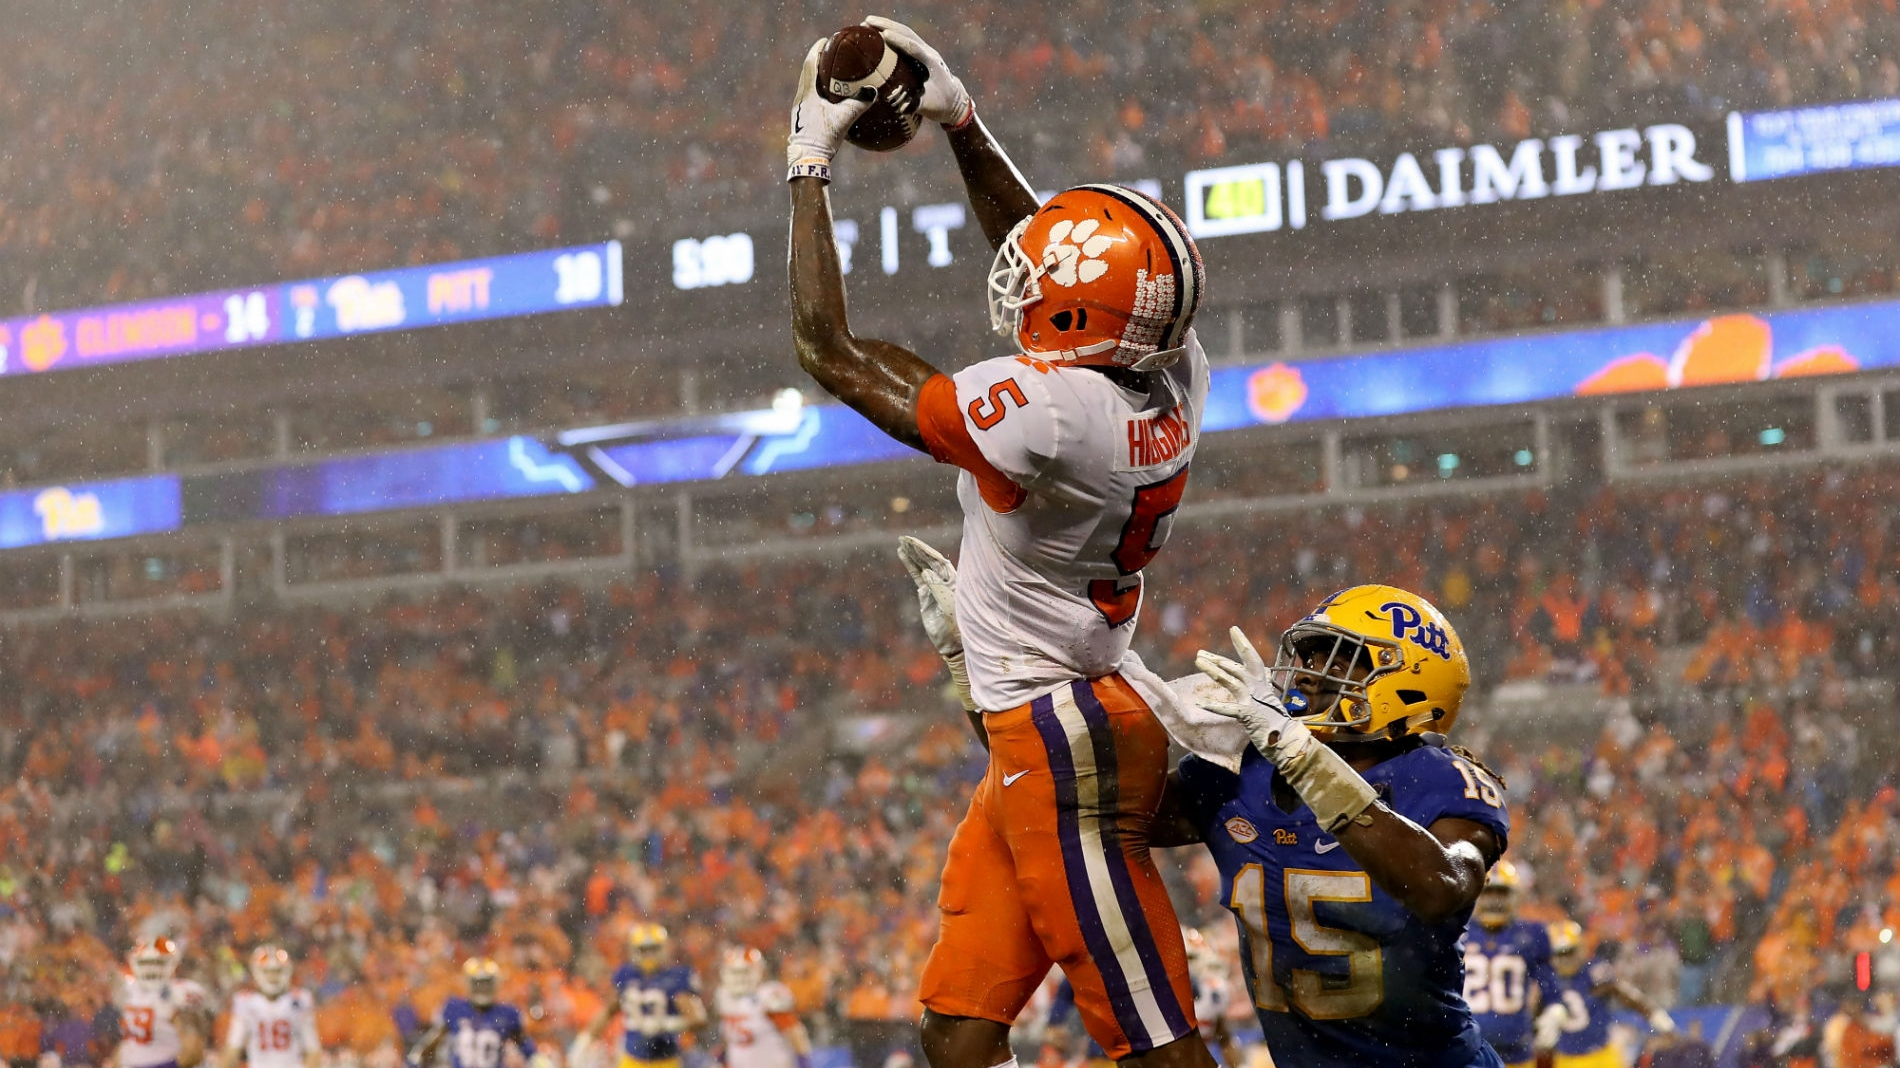 Clemson Vs Pitt Score Results From The Tigers Dominant Acc